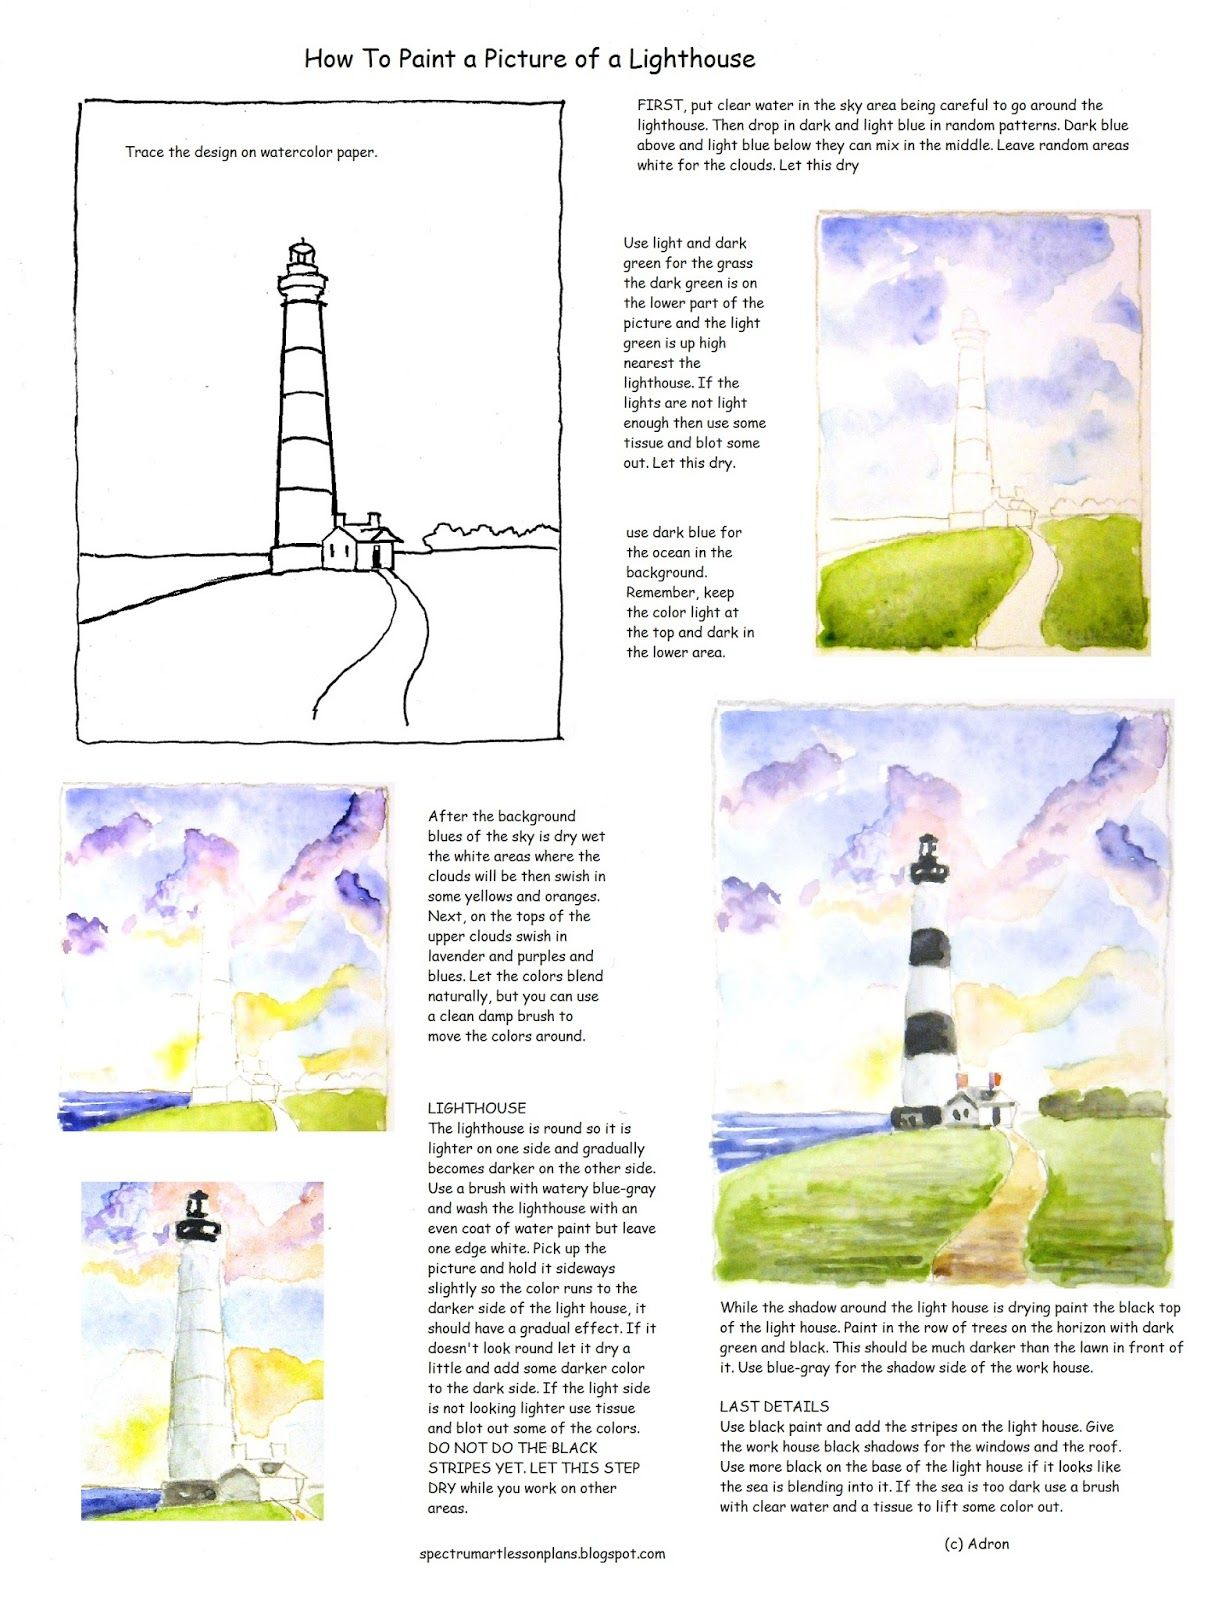 How To Paint A Picture Of A Lighthouse Worksheet For